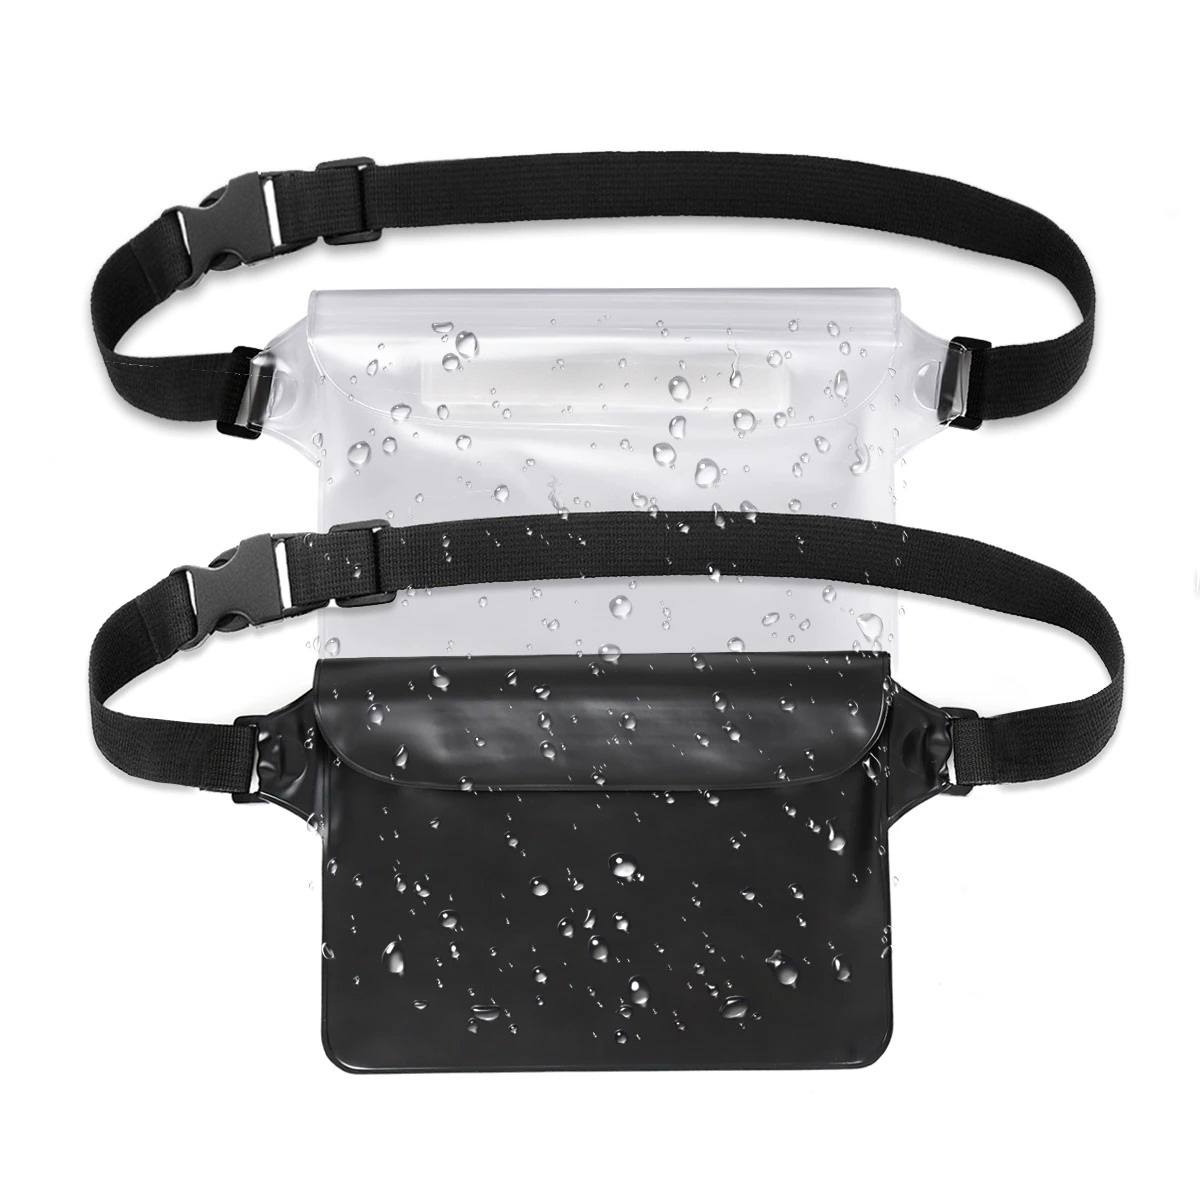 2-Pack Waterproof Pouch With Waist Strap (6)